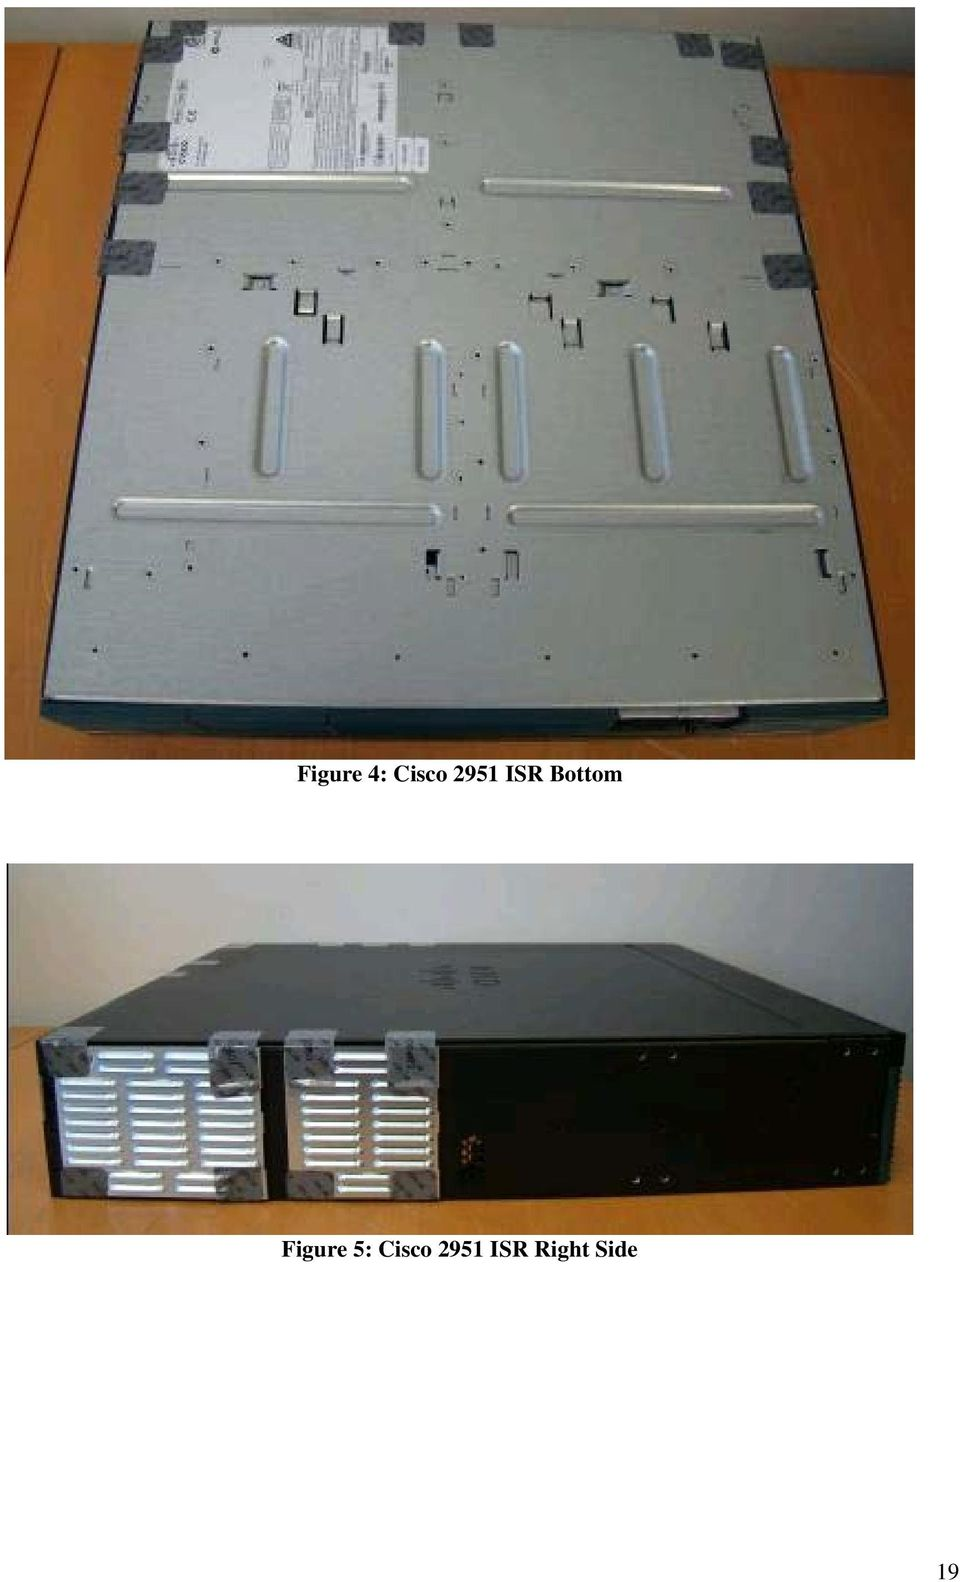 Cisco 2951, Cisco 3925 and Cisco 3945 Integrated Services Routers